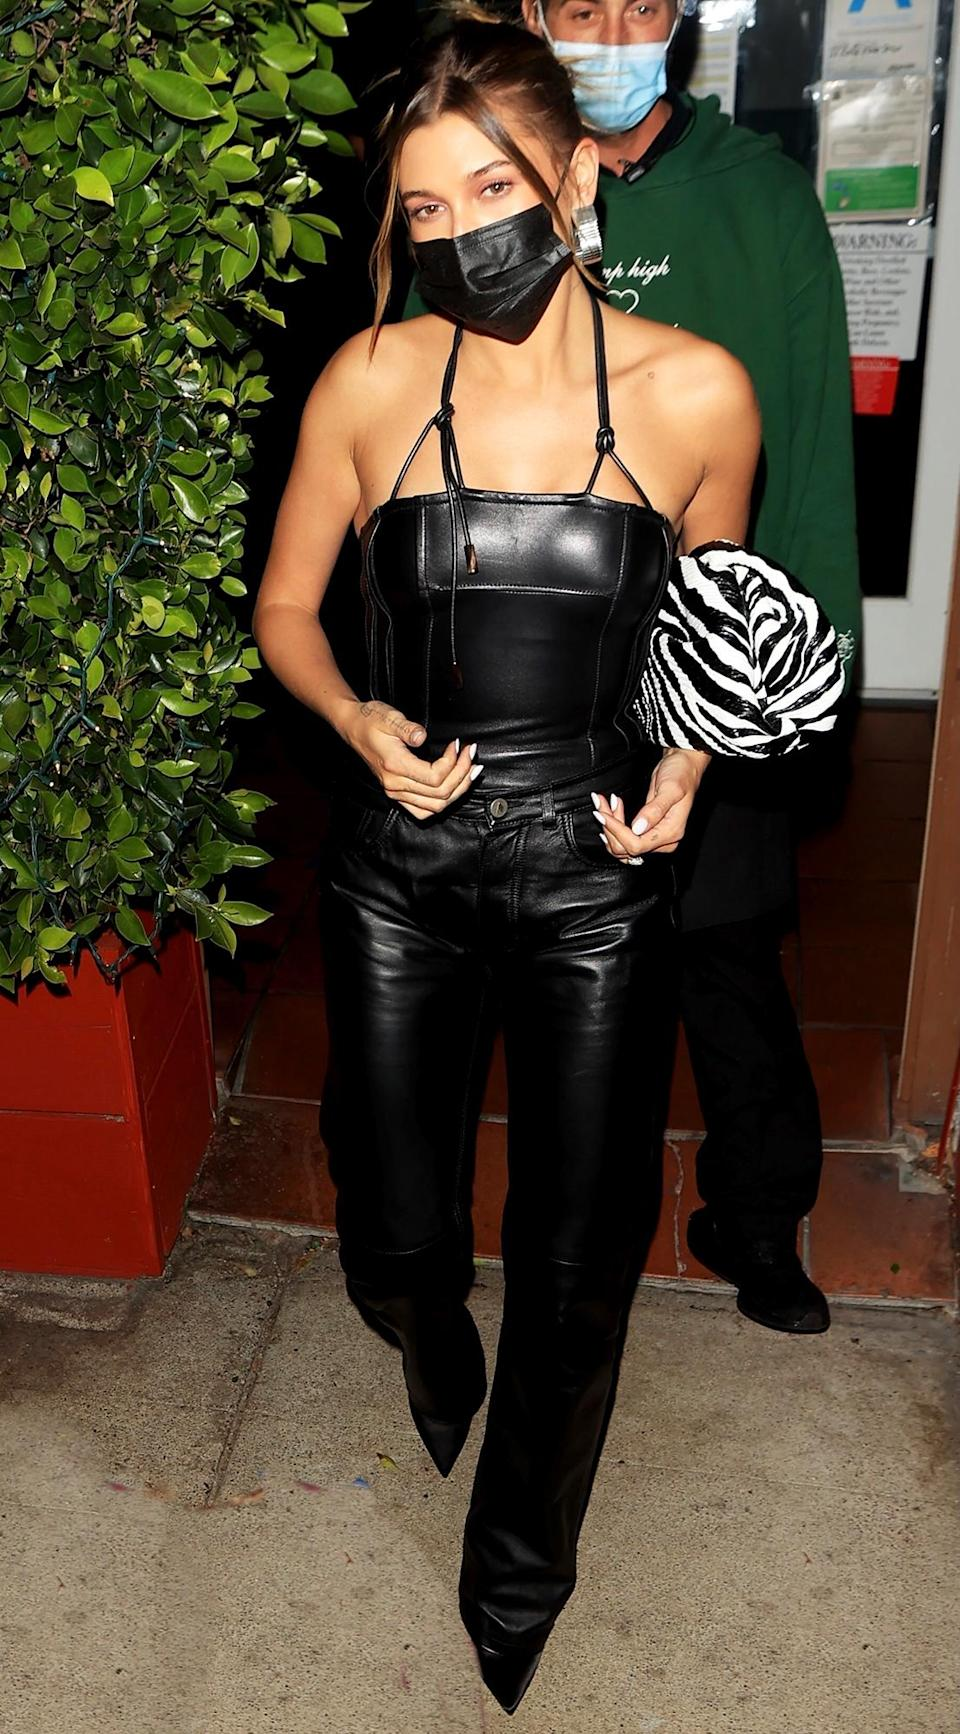 <p>Hailey Bieber looked stylish in an all-black leather outfit while enjoying dinner with friends at Giorgio Baldi in Santa Monica, California.</p>